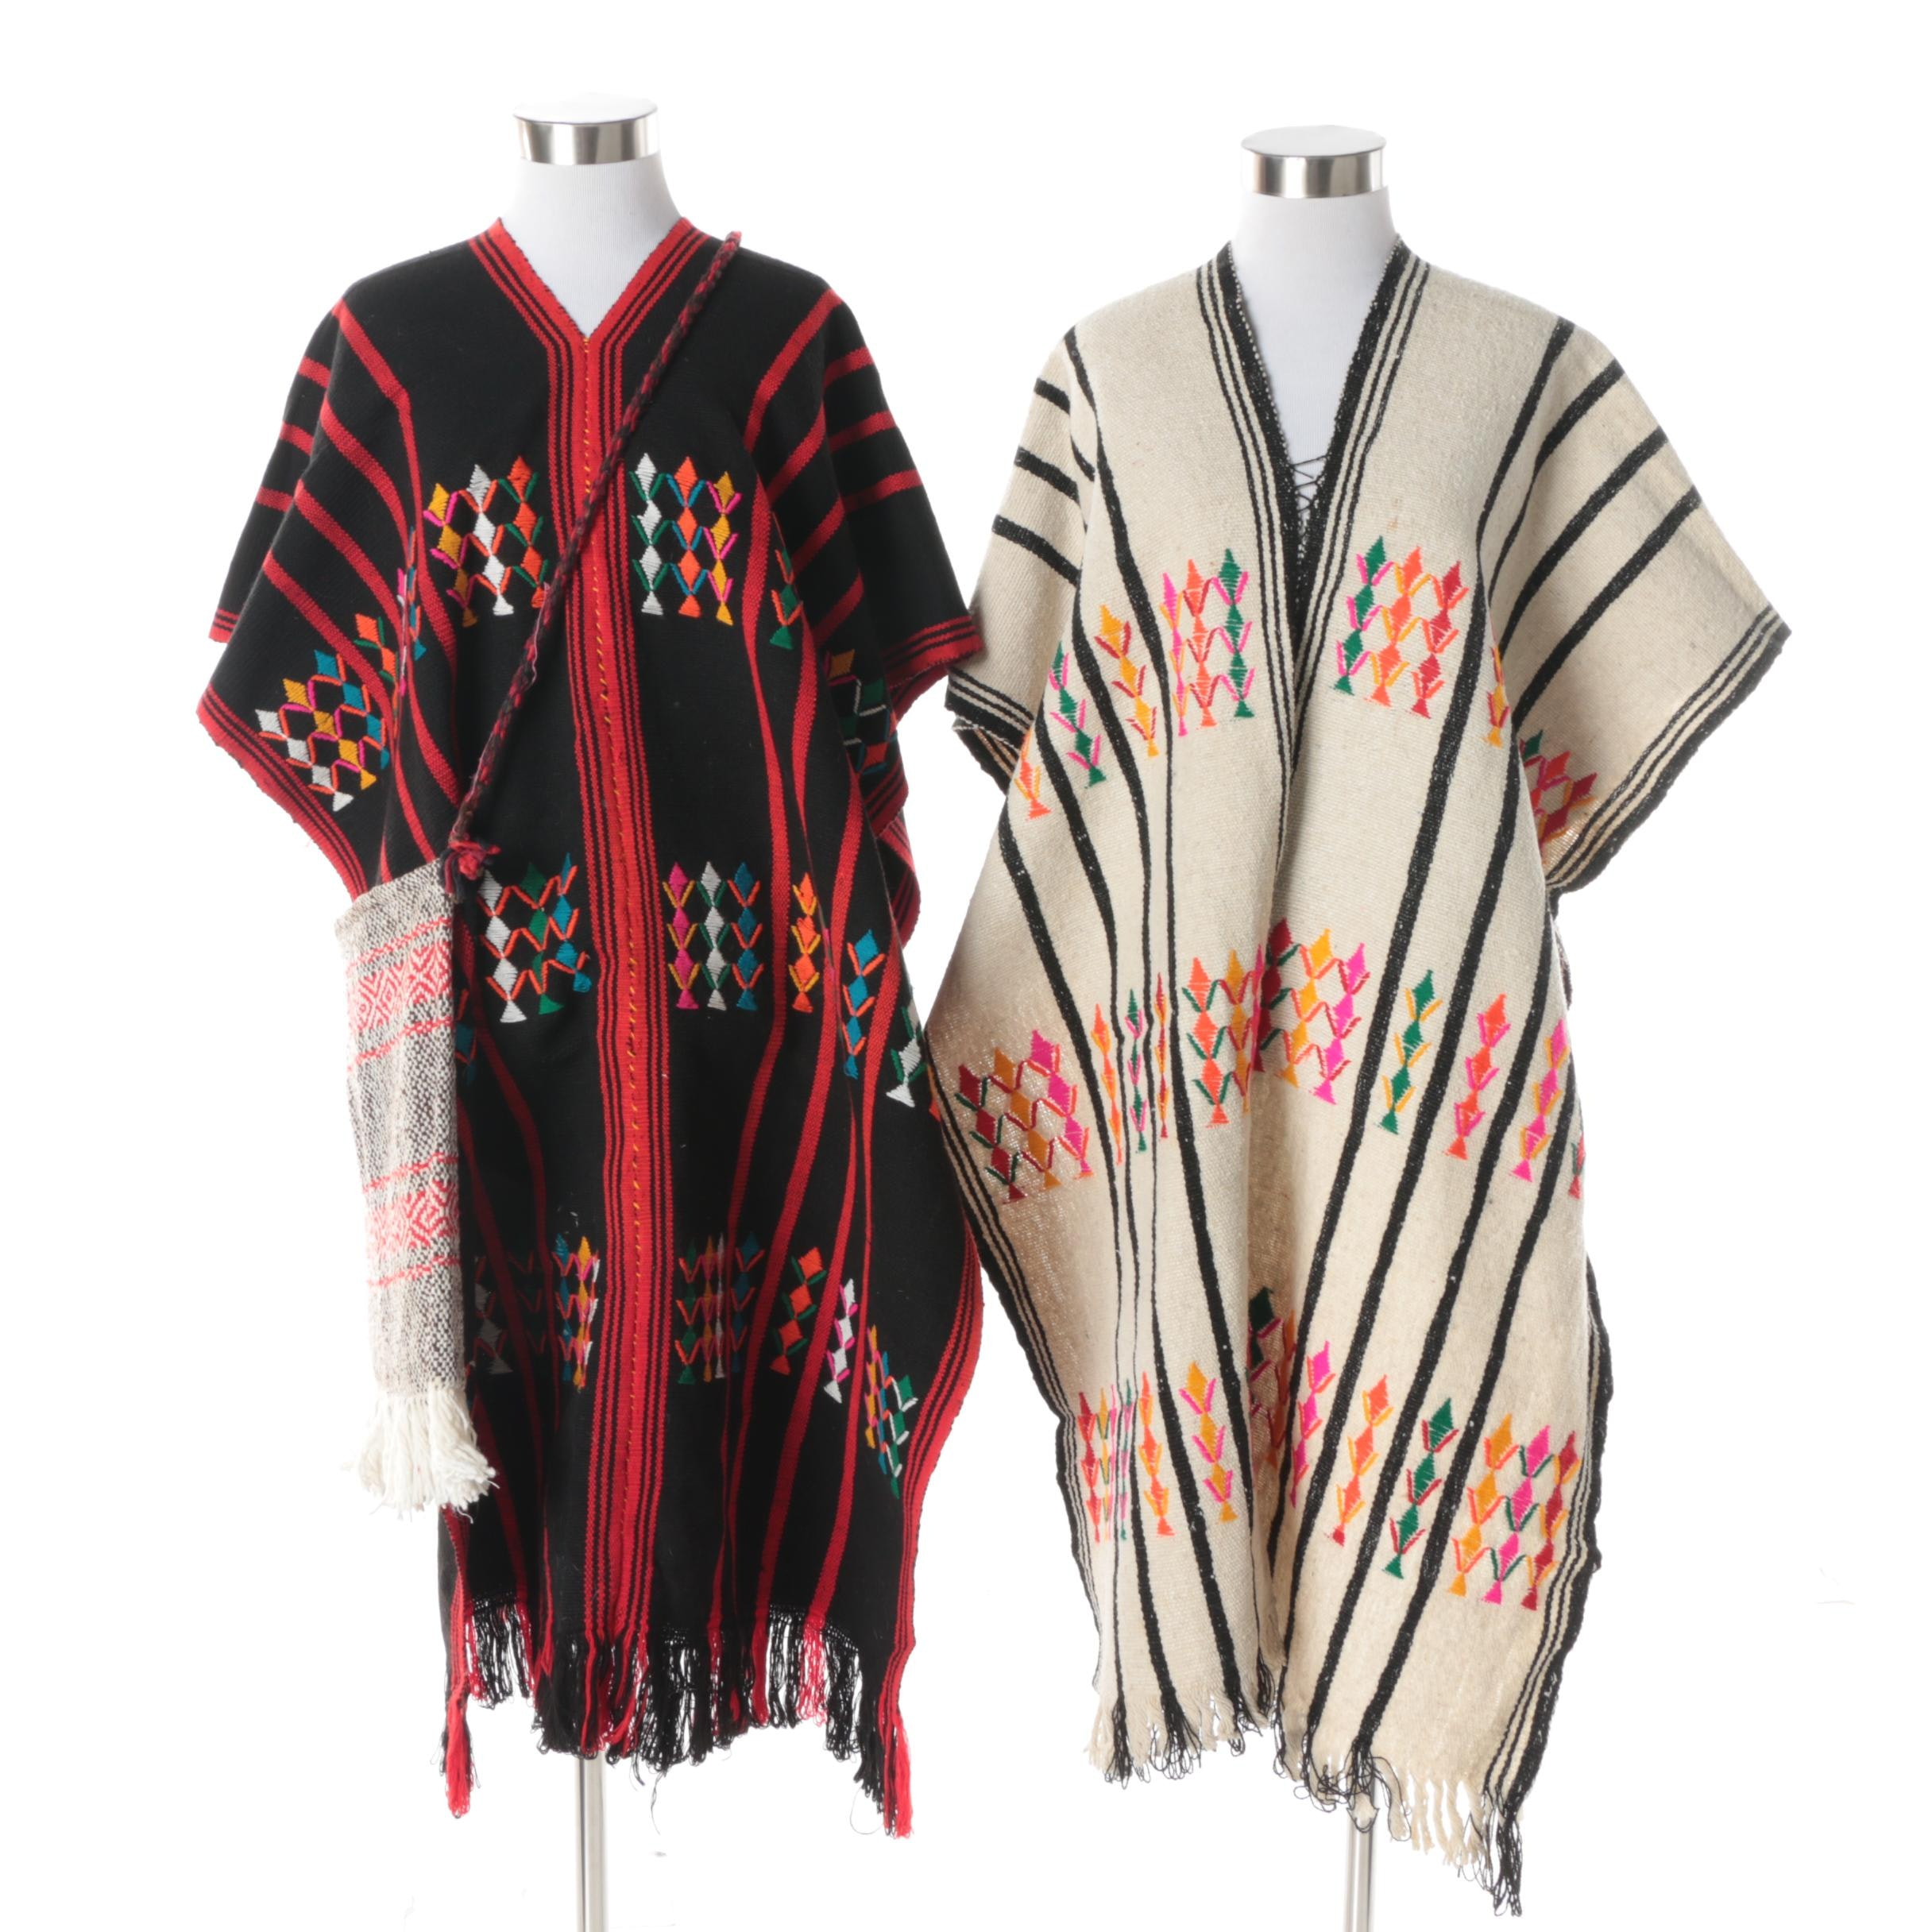 South American Style Handwoven and Embroidered Ponchos with Handwoven Crossbody